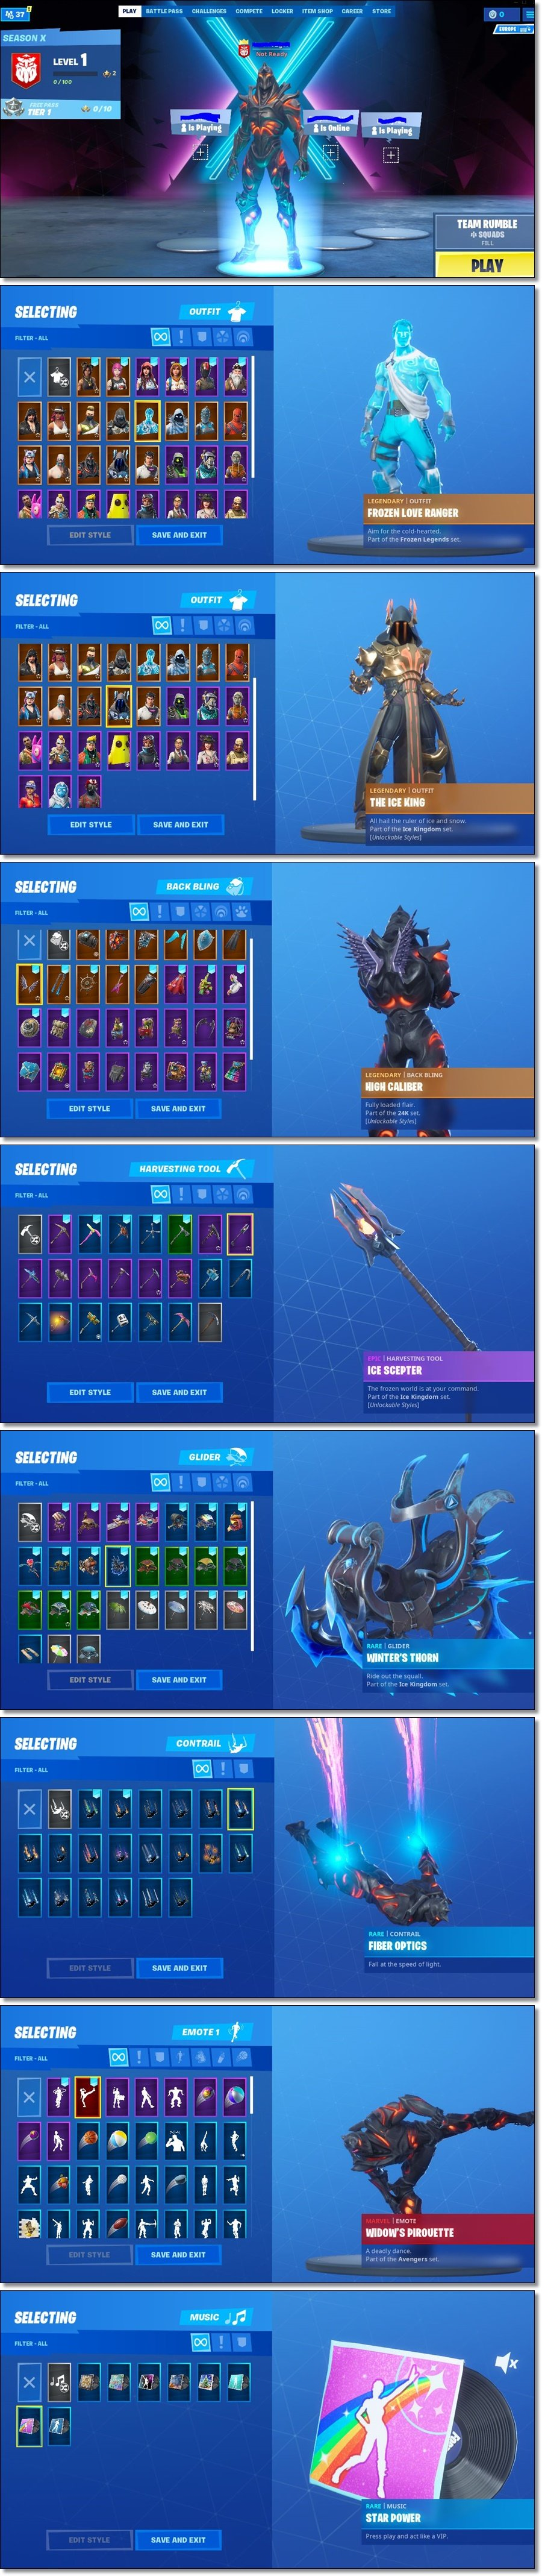 Fortnite Account / 33 Skins / Best Skins / Full Email Access / Se